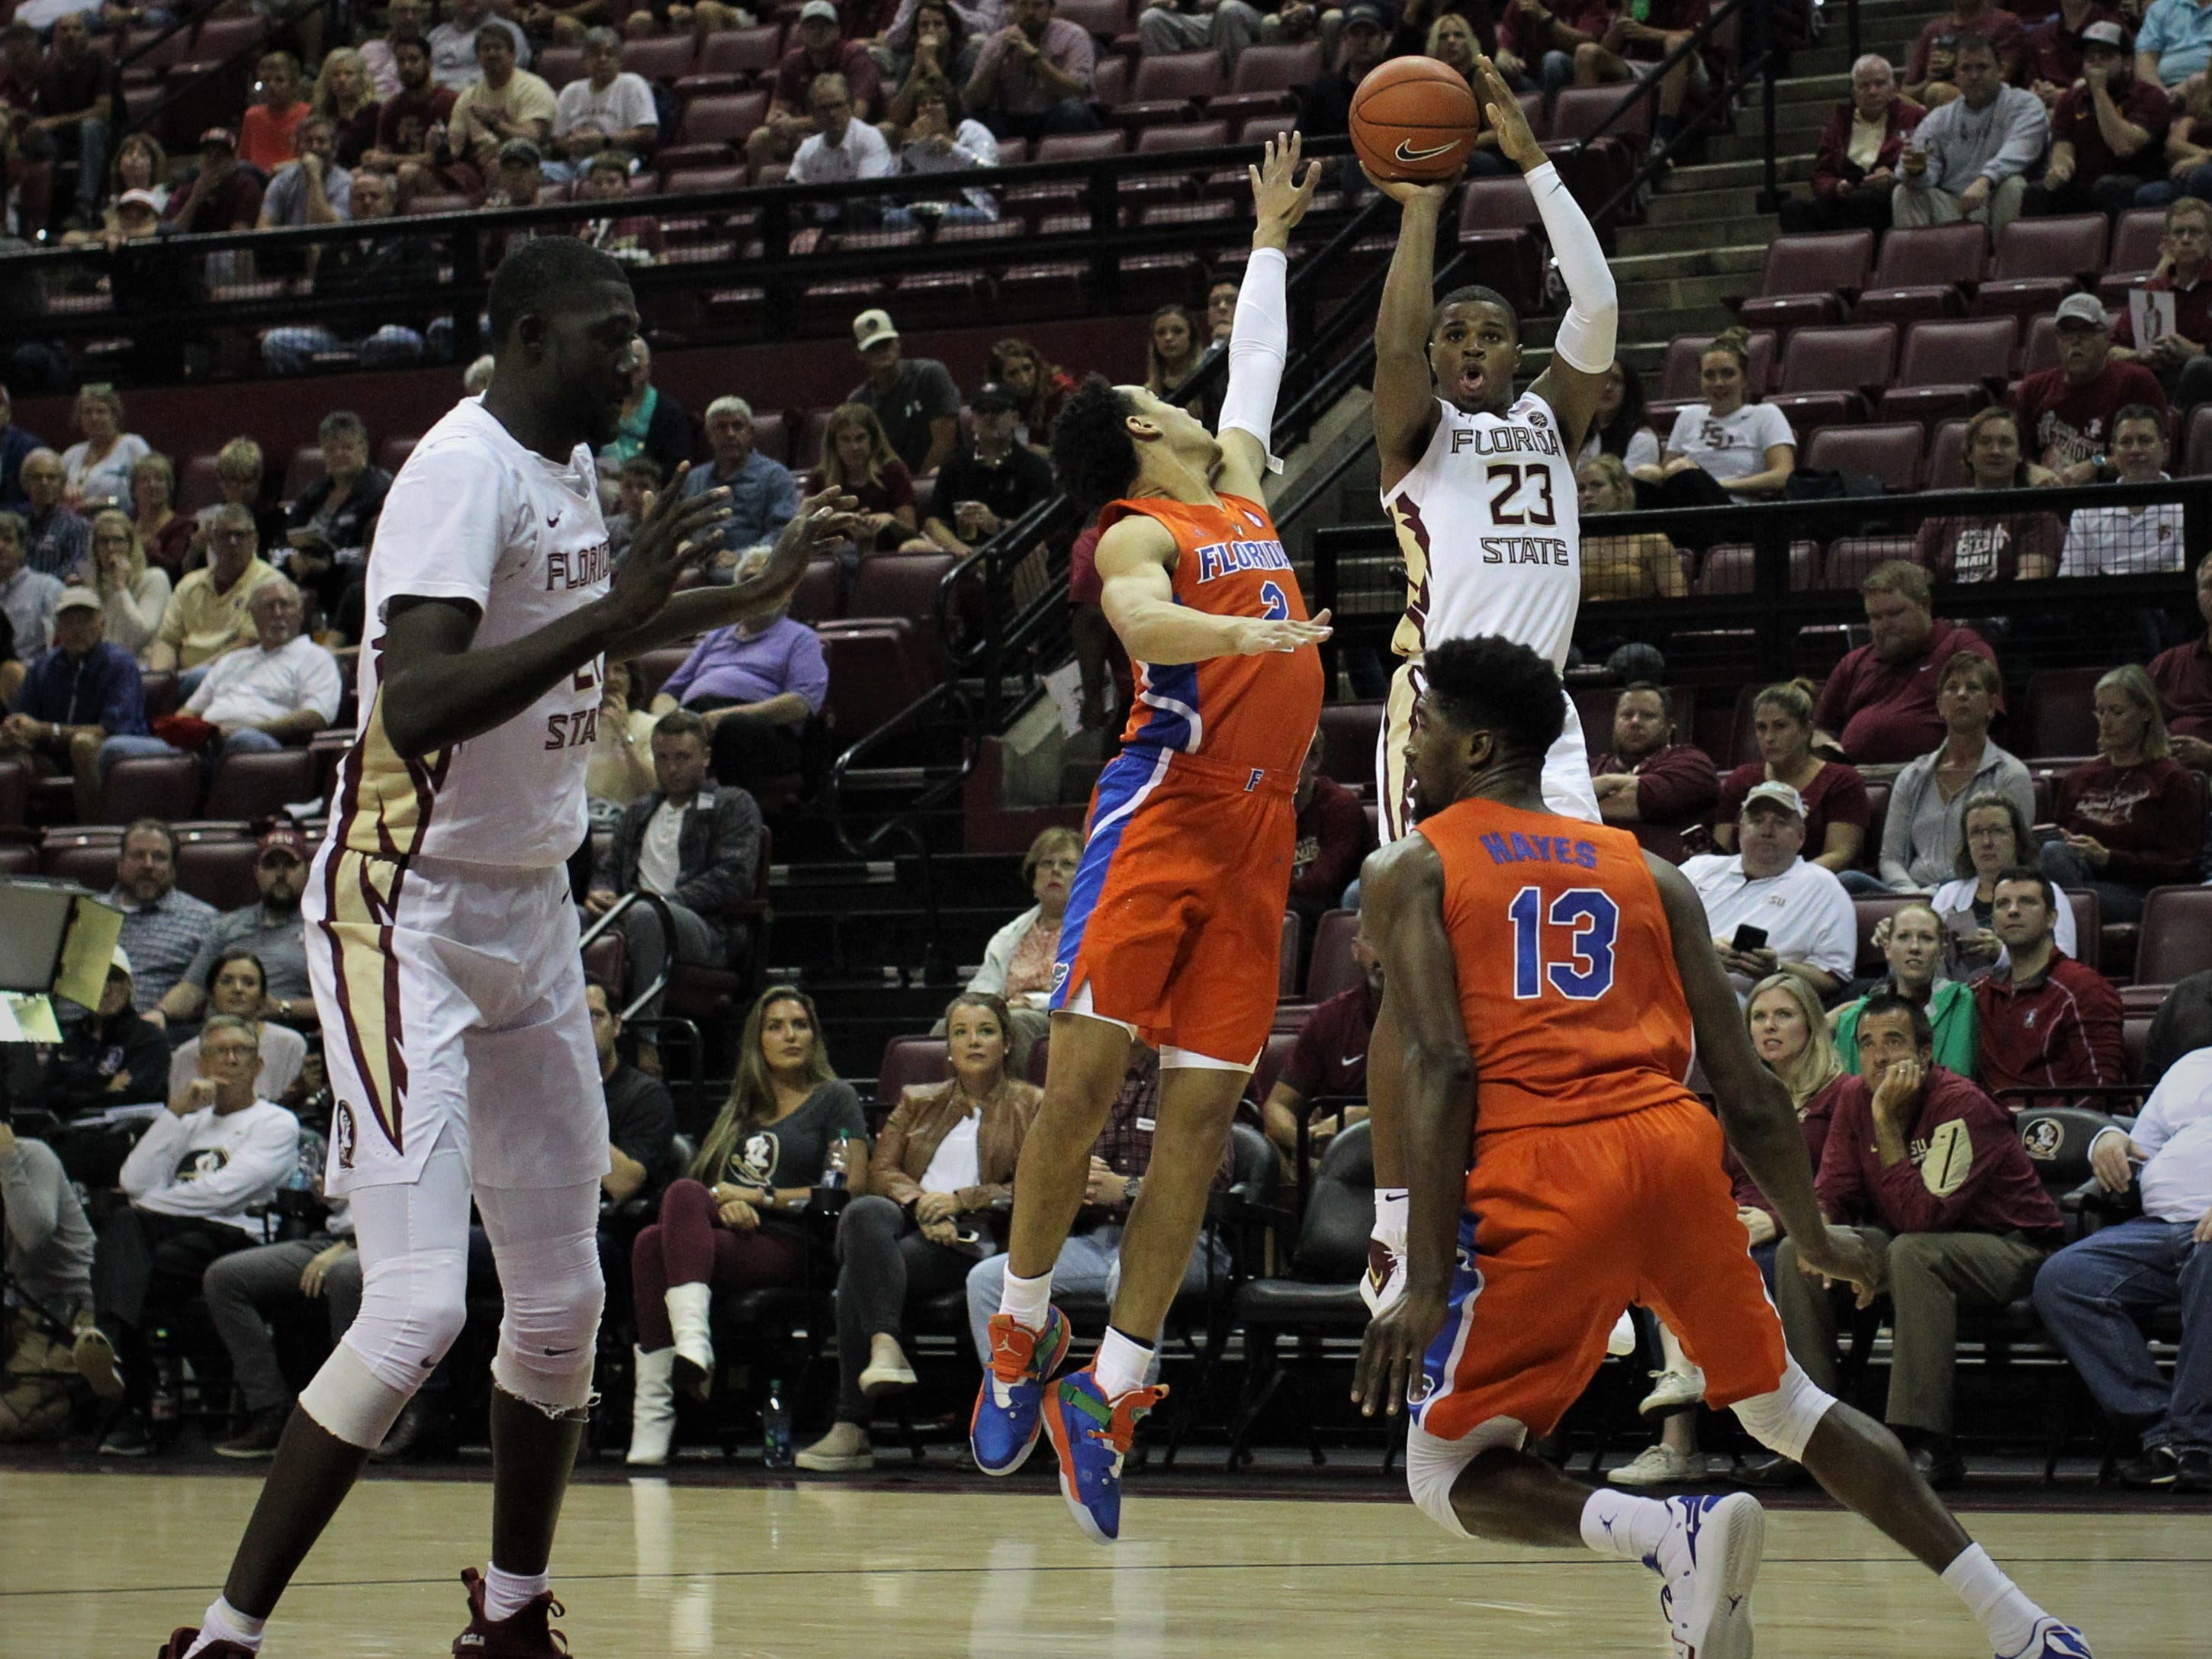 Florida State guard M.J. Walker gets off a 3-pointer over Florida's Jalen Hudson during the Sunshine Showdown game Tuesday at the Tucker Civic Center.